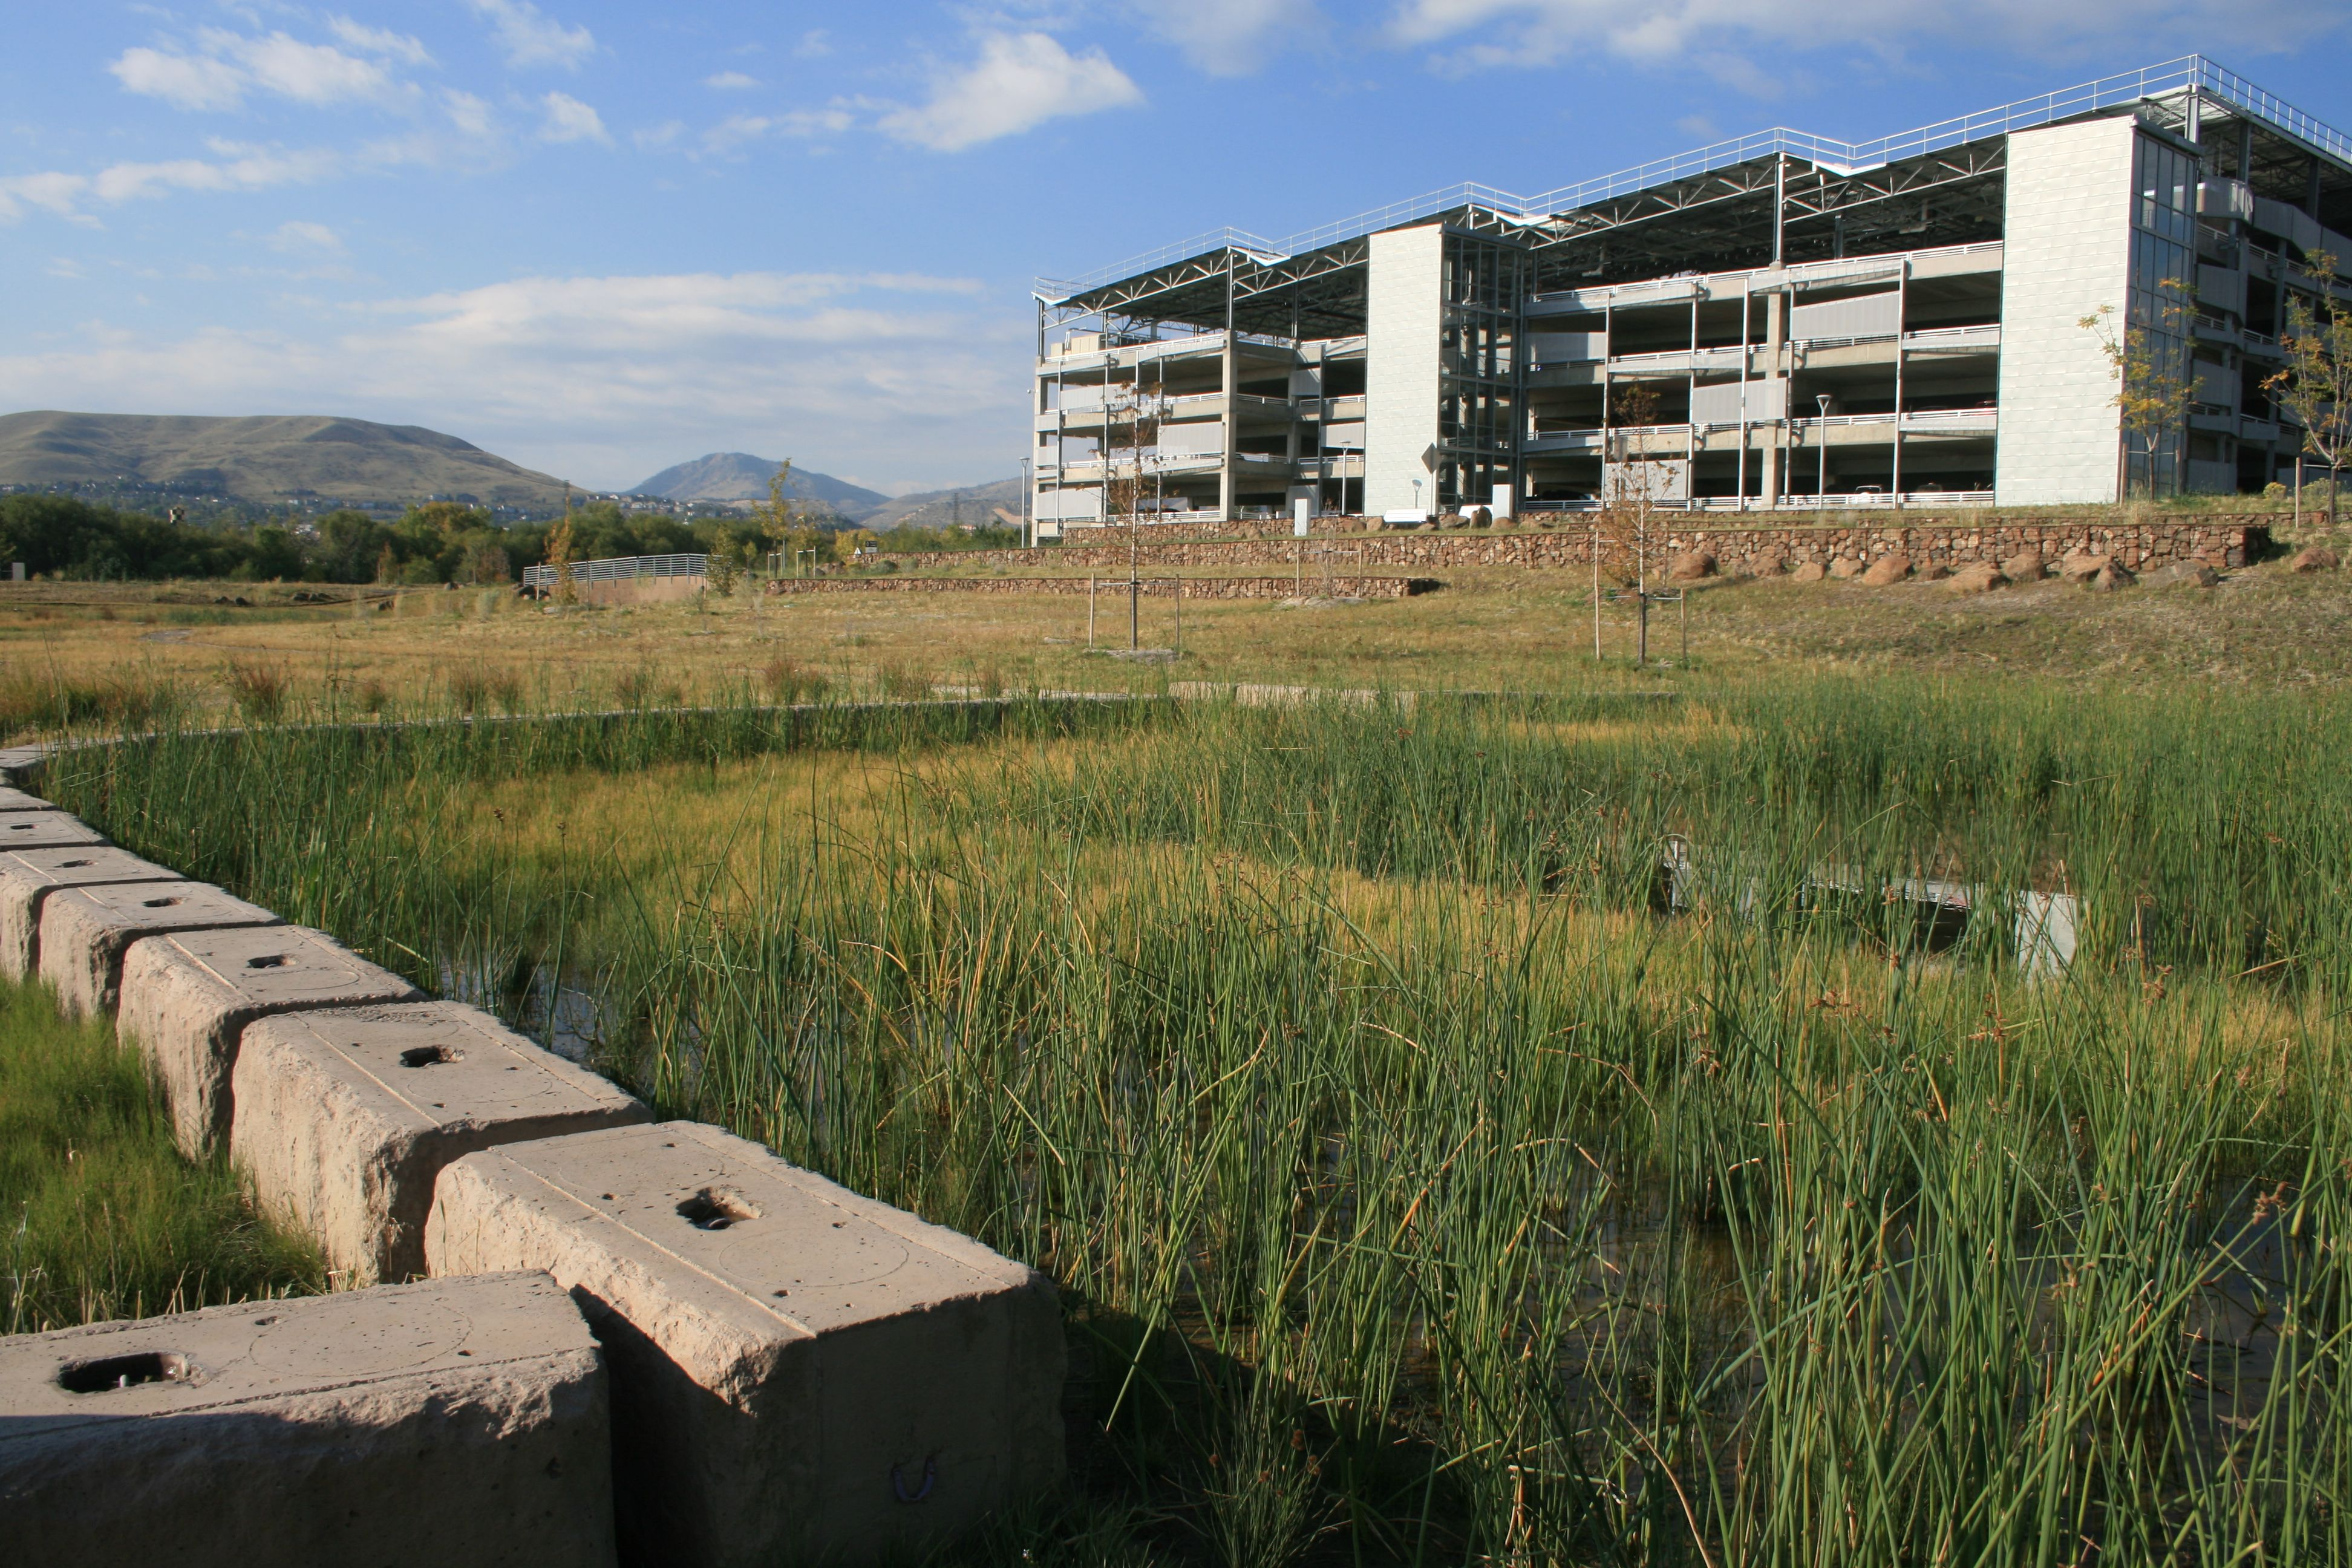 Grasscrete - NREL Detention Pond - 01